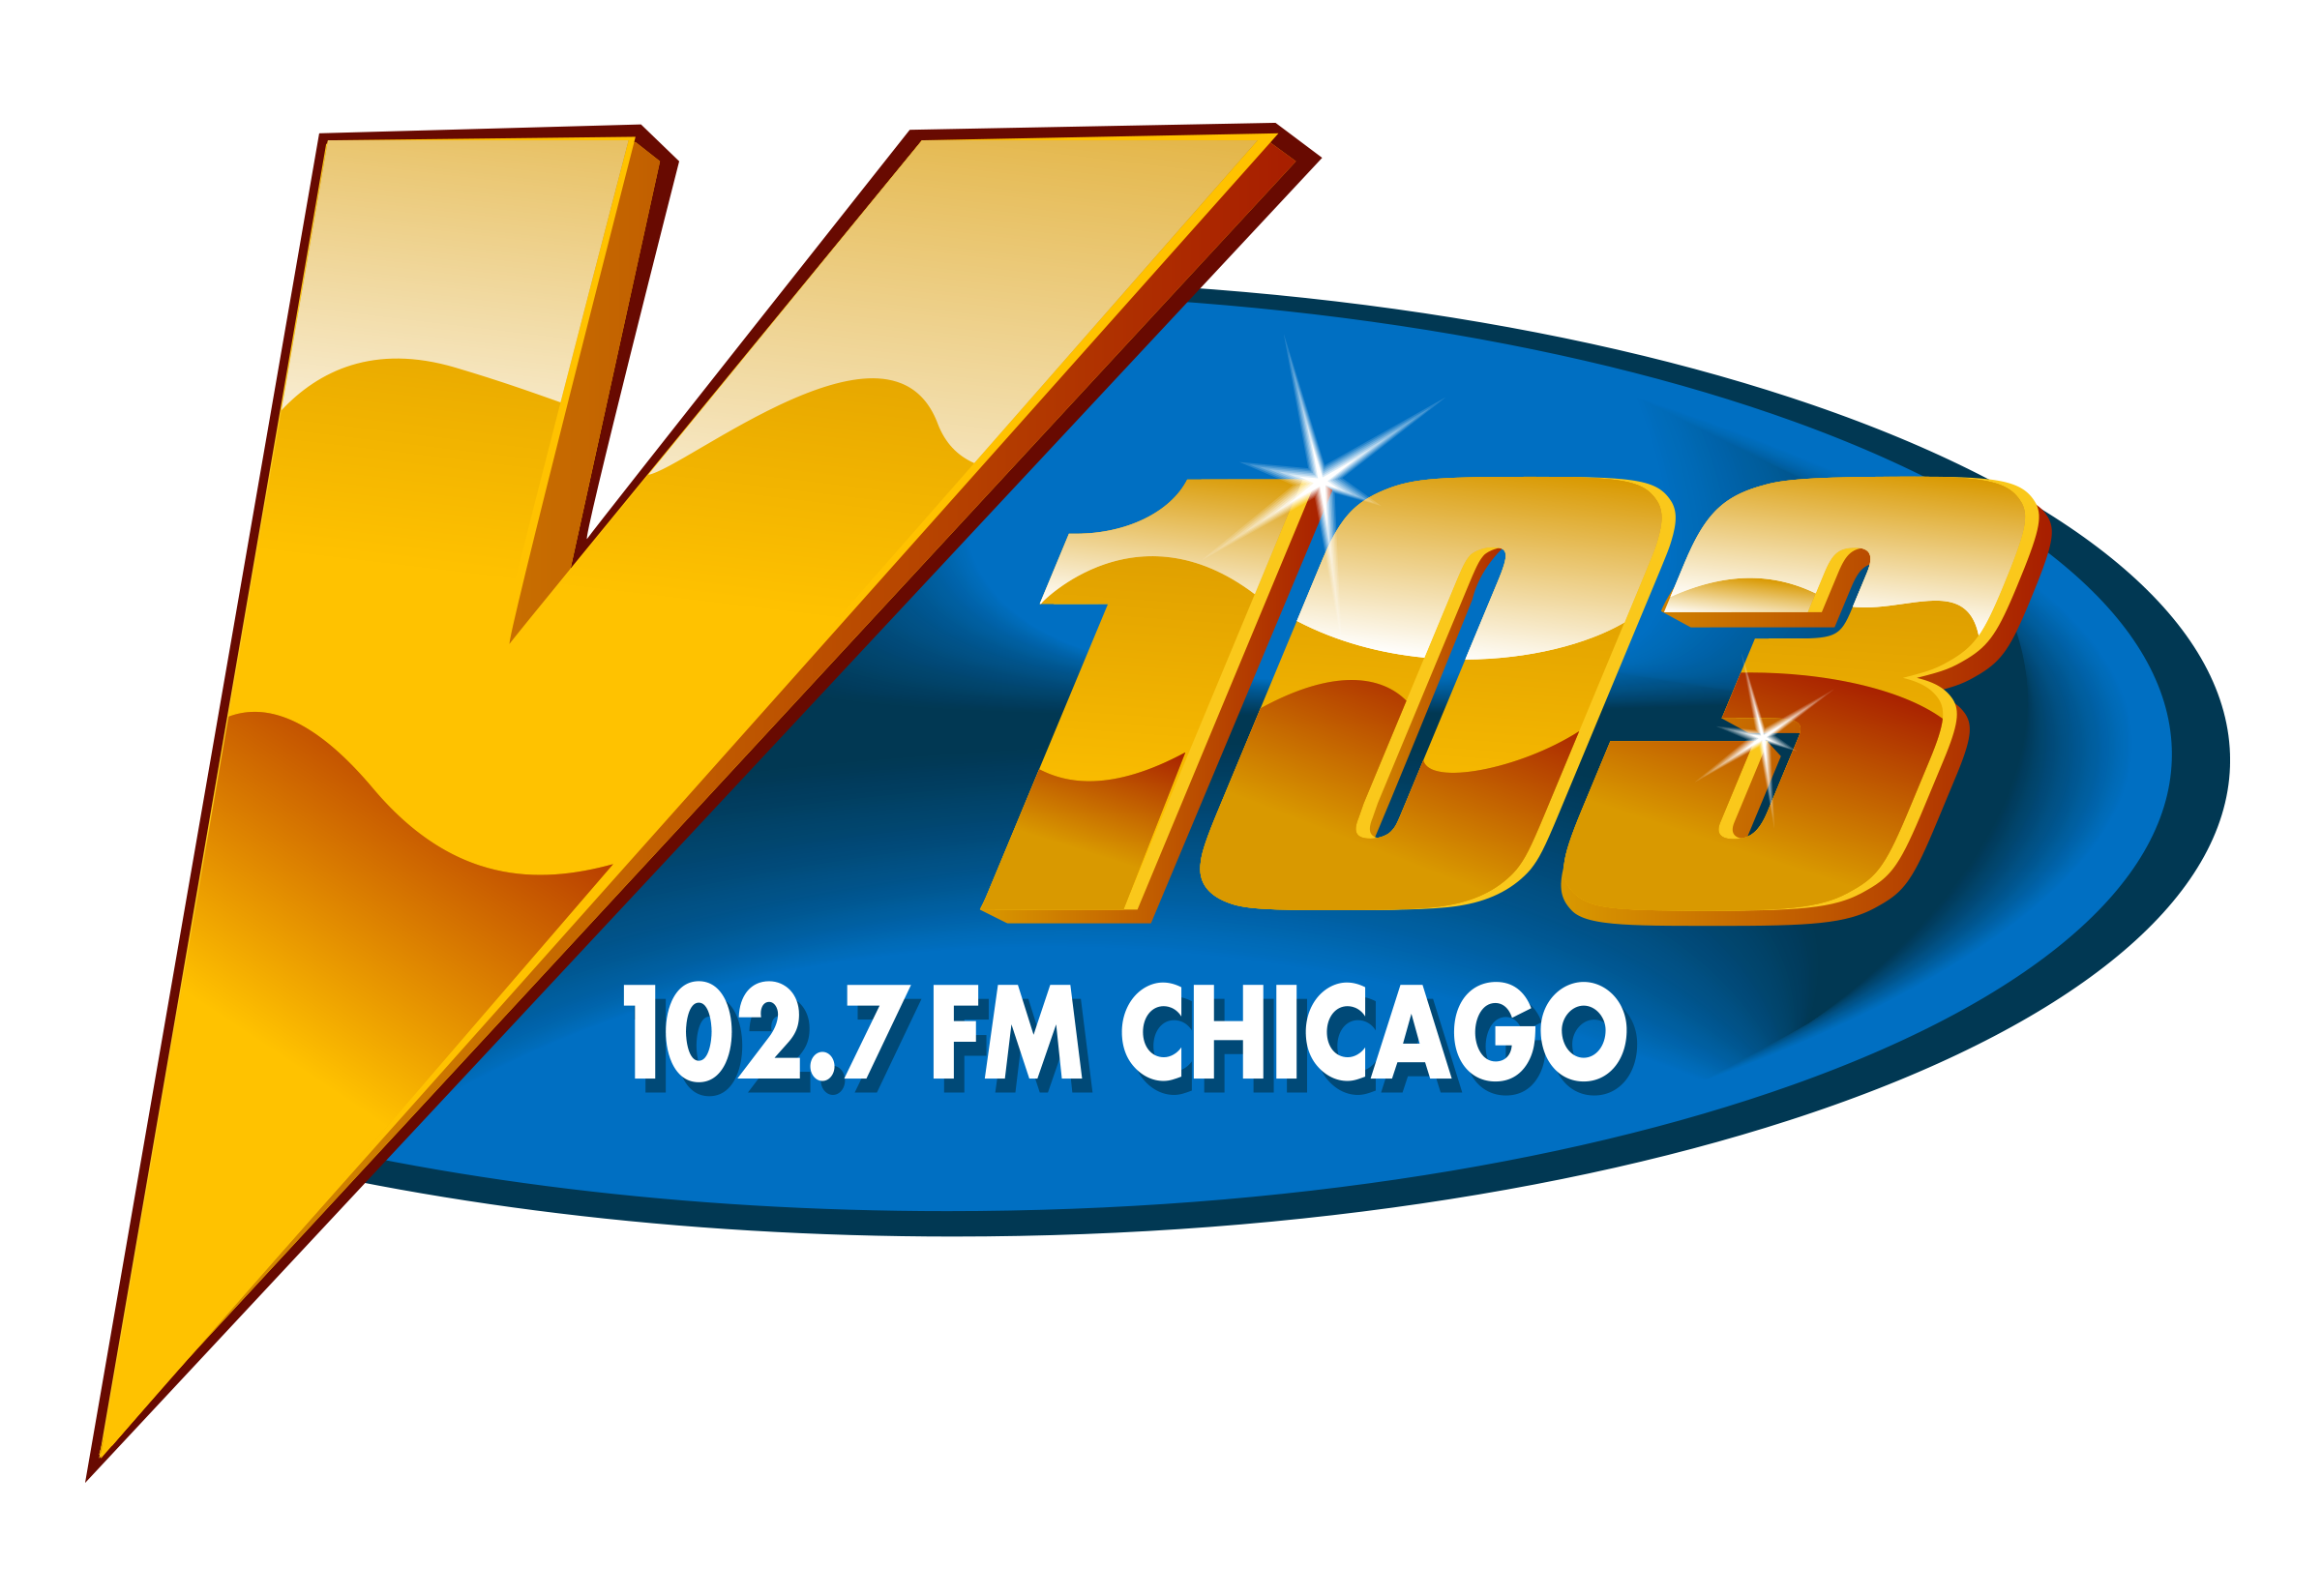 V103 Contact Info: Number, Address, Advertising & More | V103